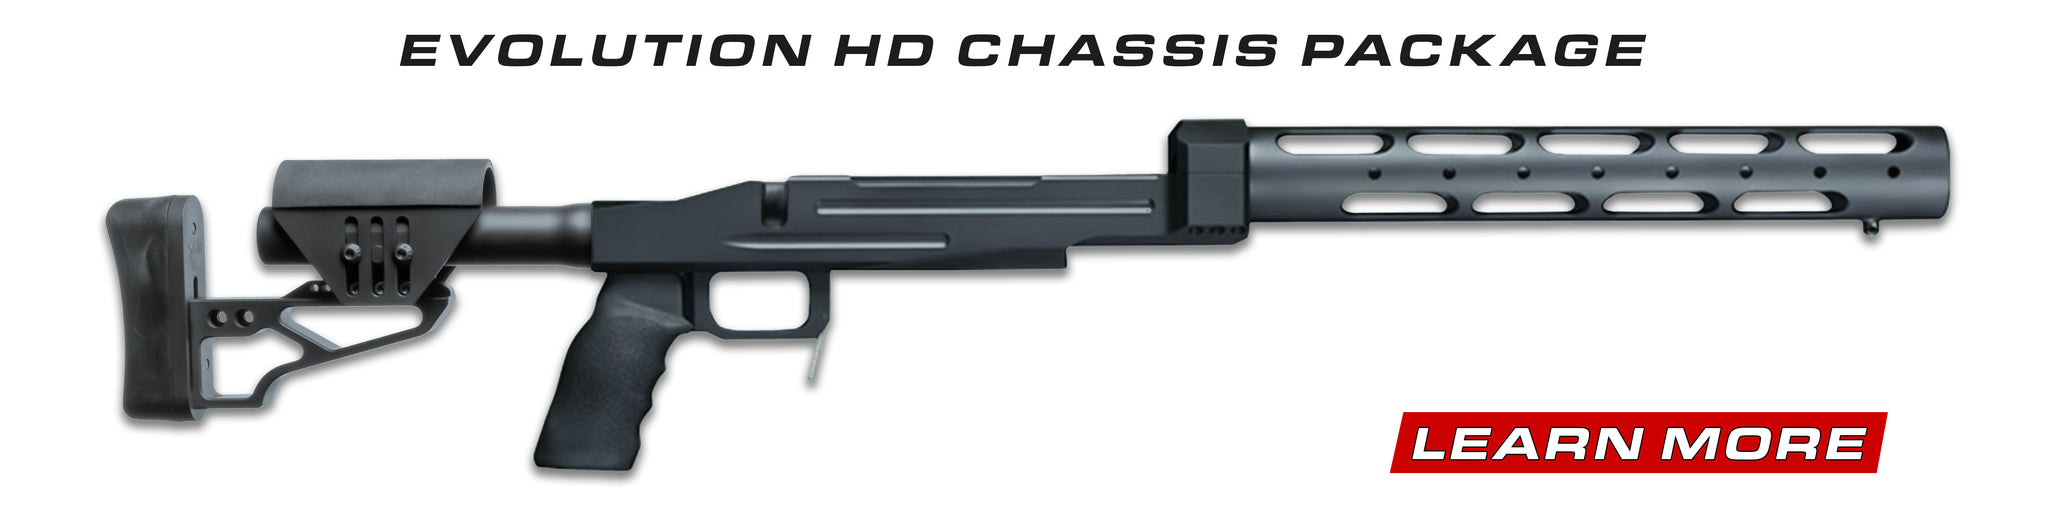 XLR Industries Evolution HD Chassis